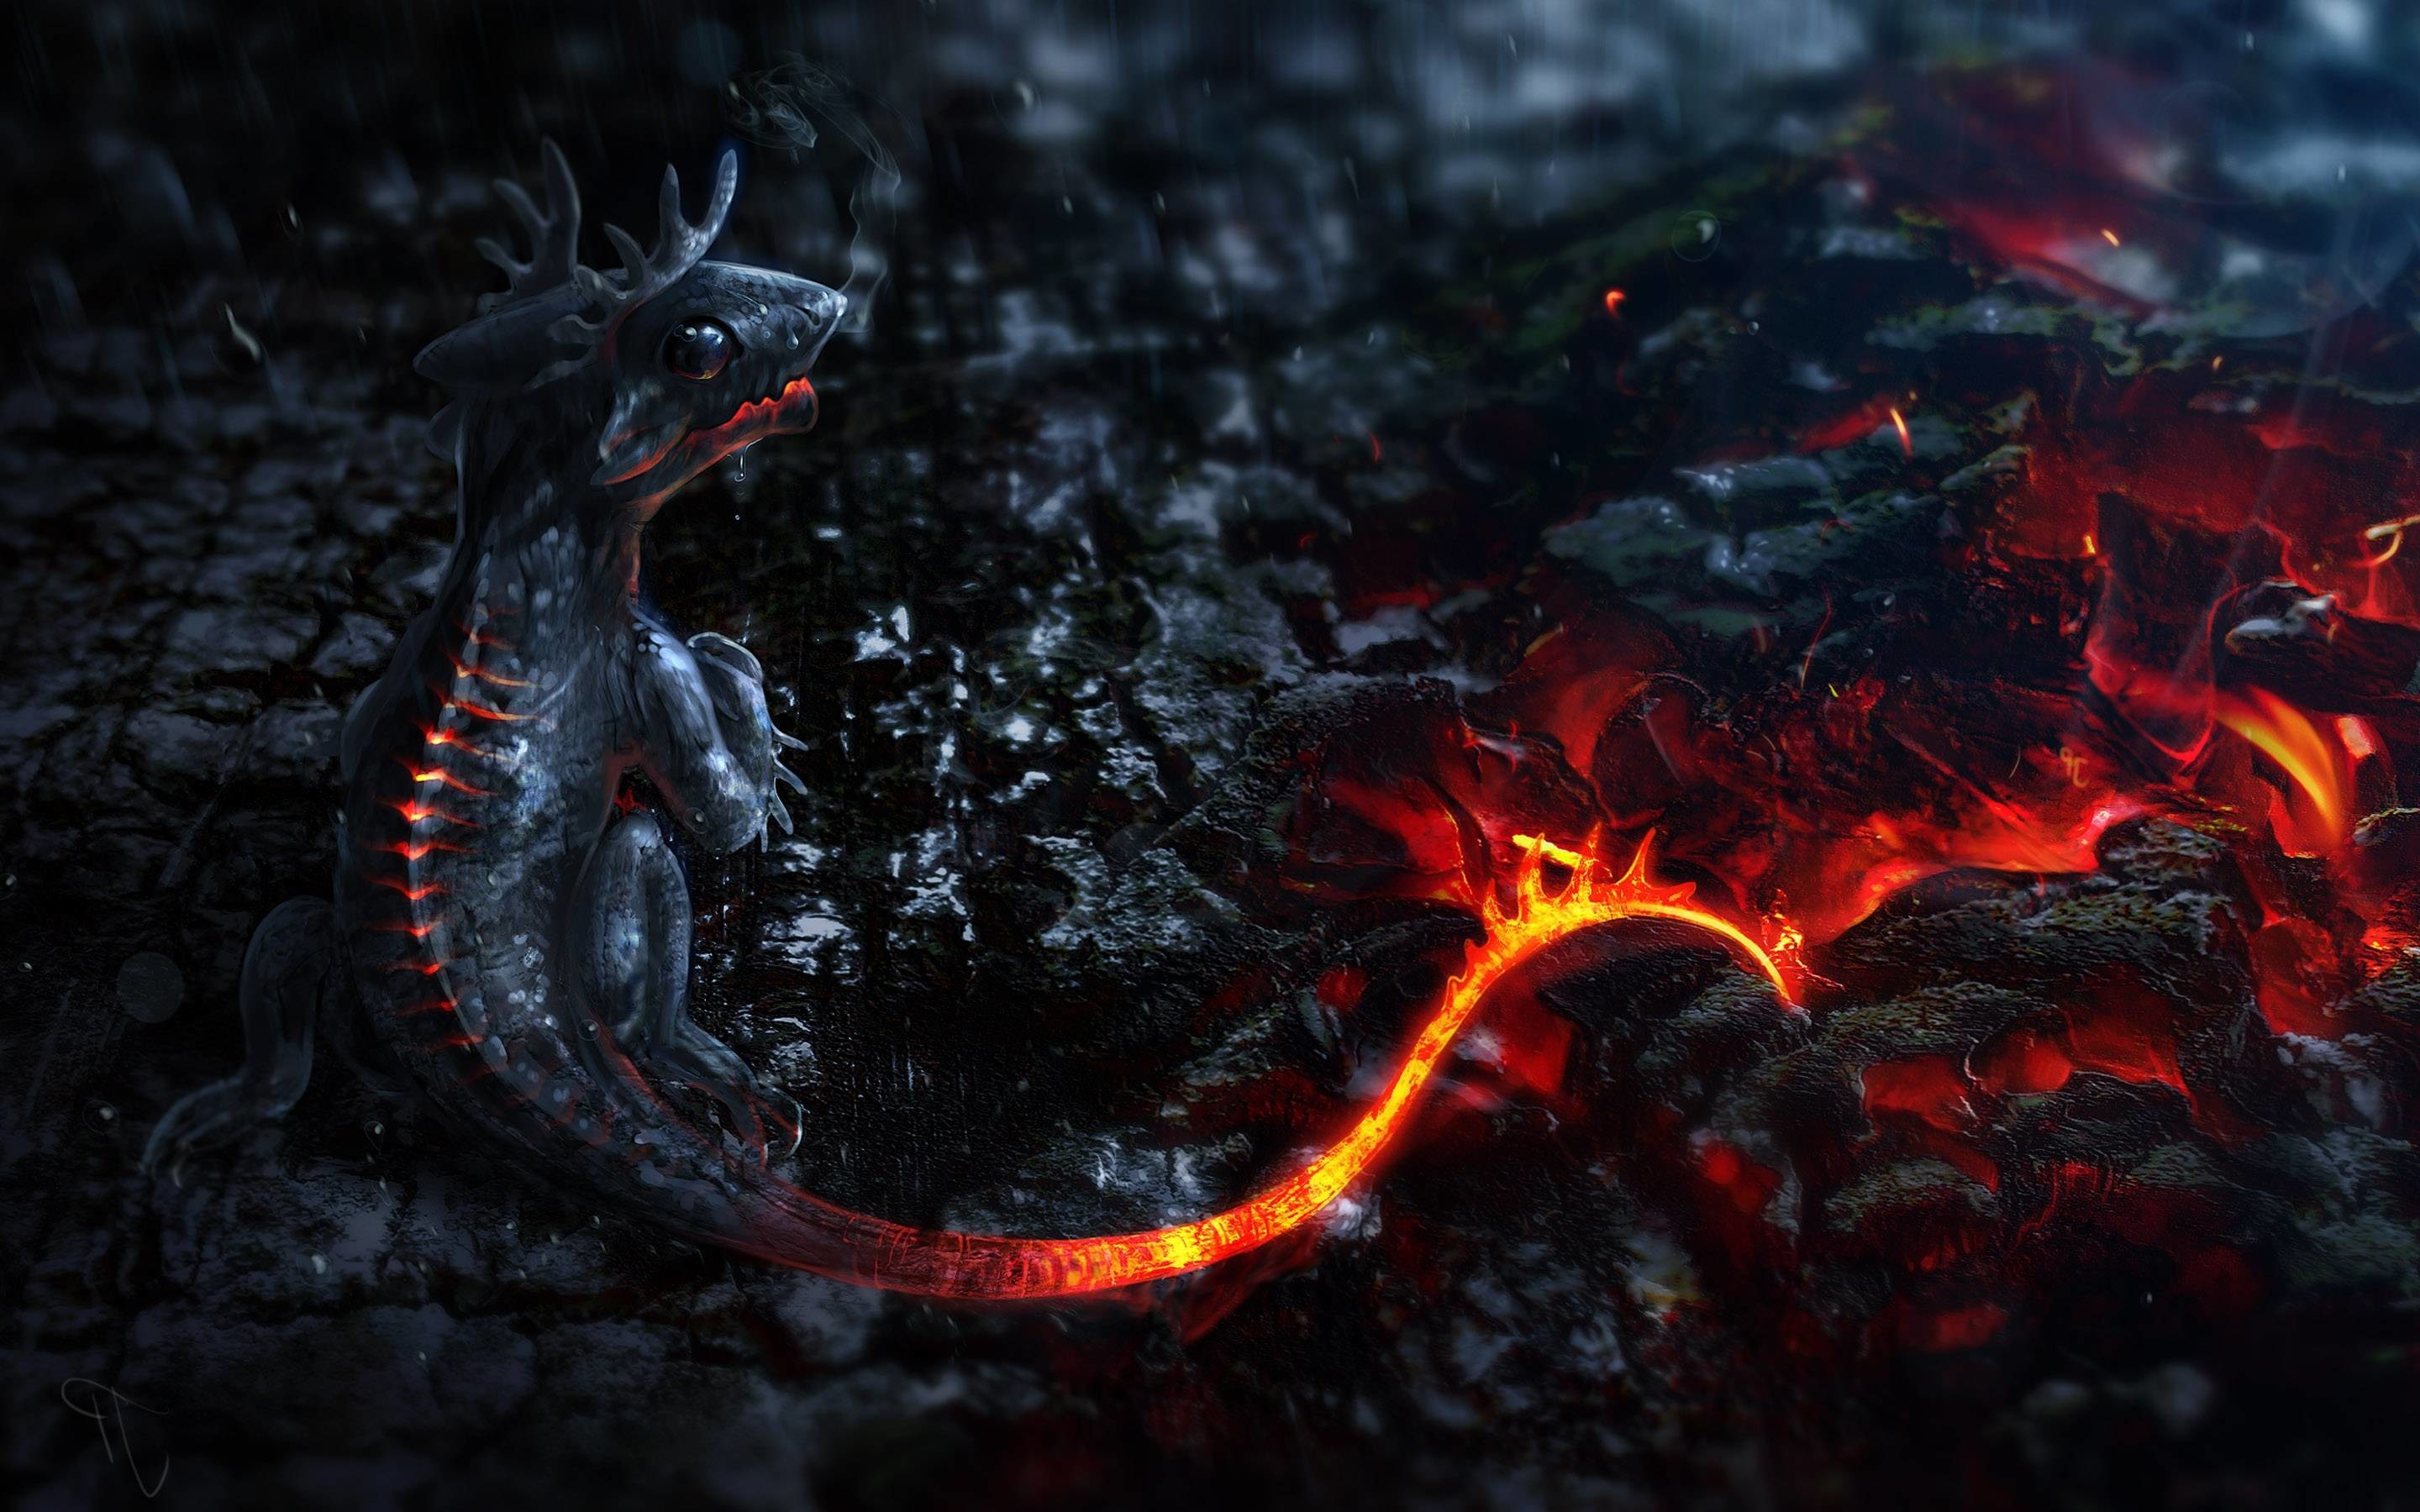 2880x1800 Wallpapers For > Awesome Fire Dragon Wallpapers